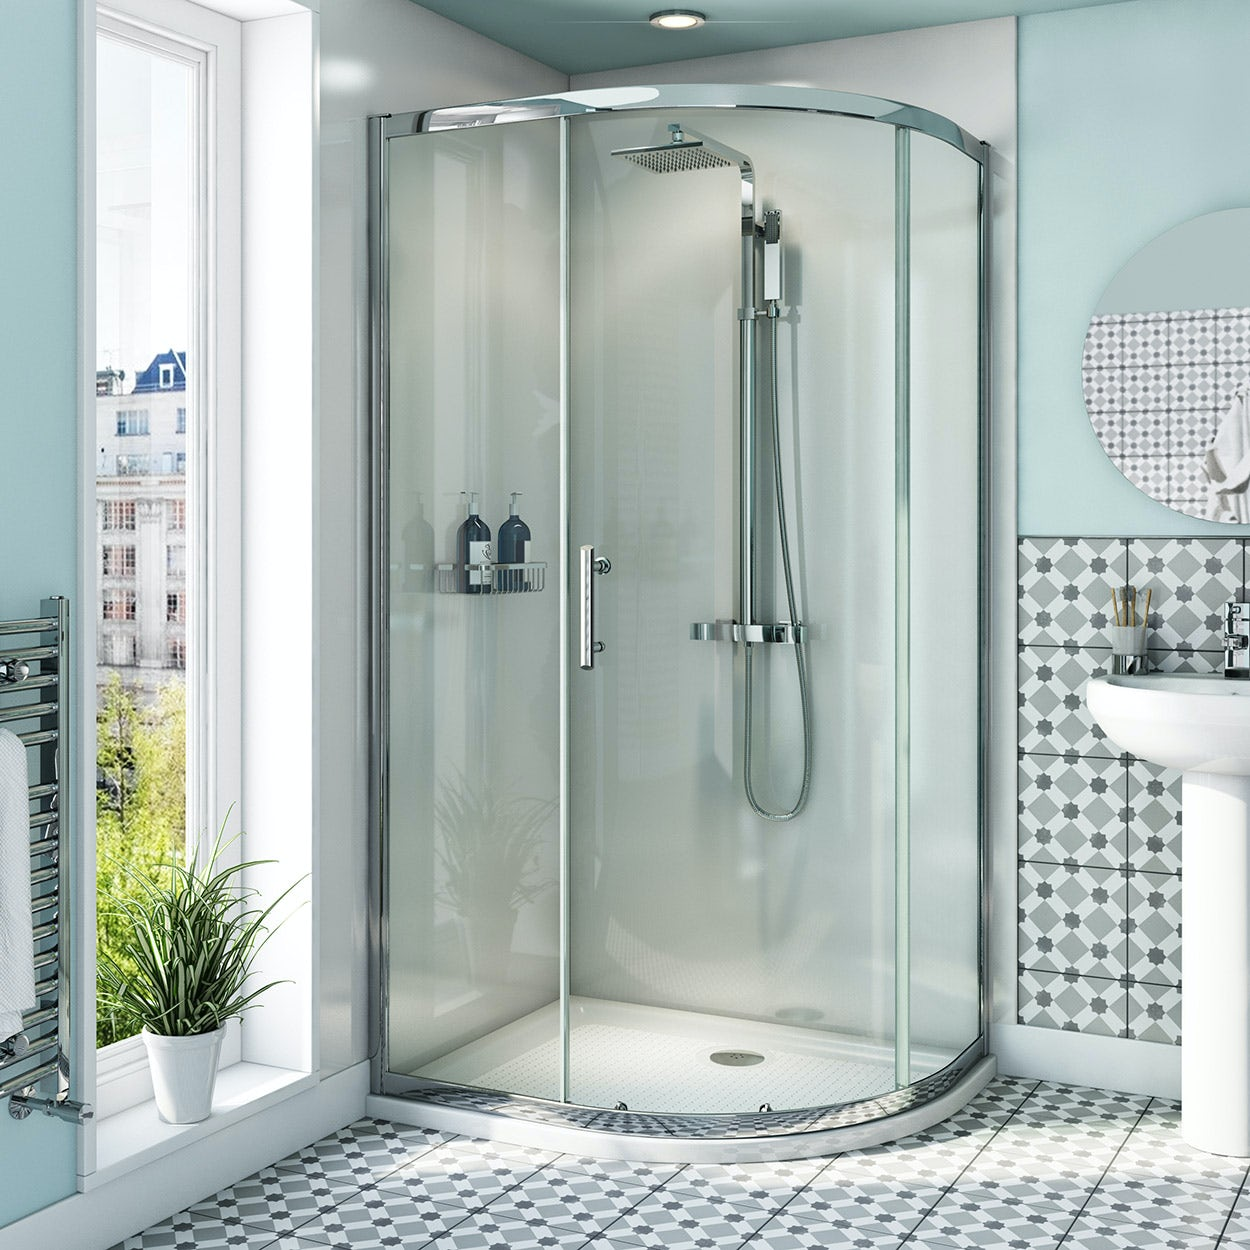 Orchard 6mm right handed offset quadrant shower enclosure with anti-slip tray 1000 x 800